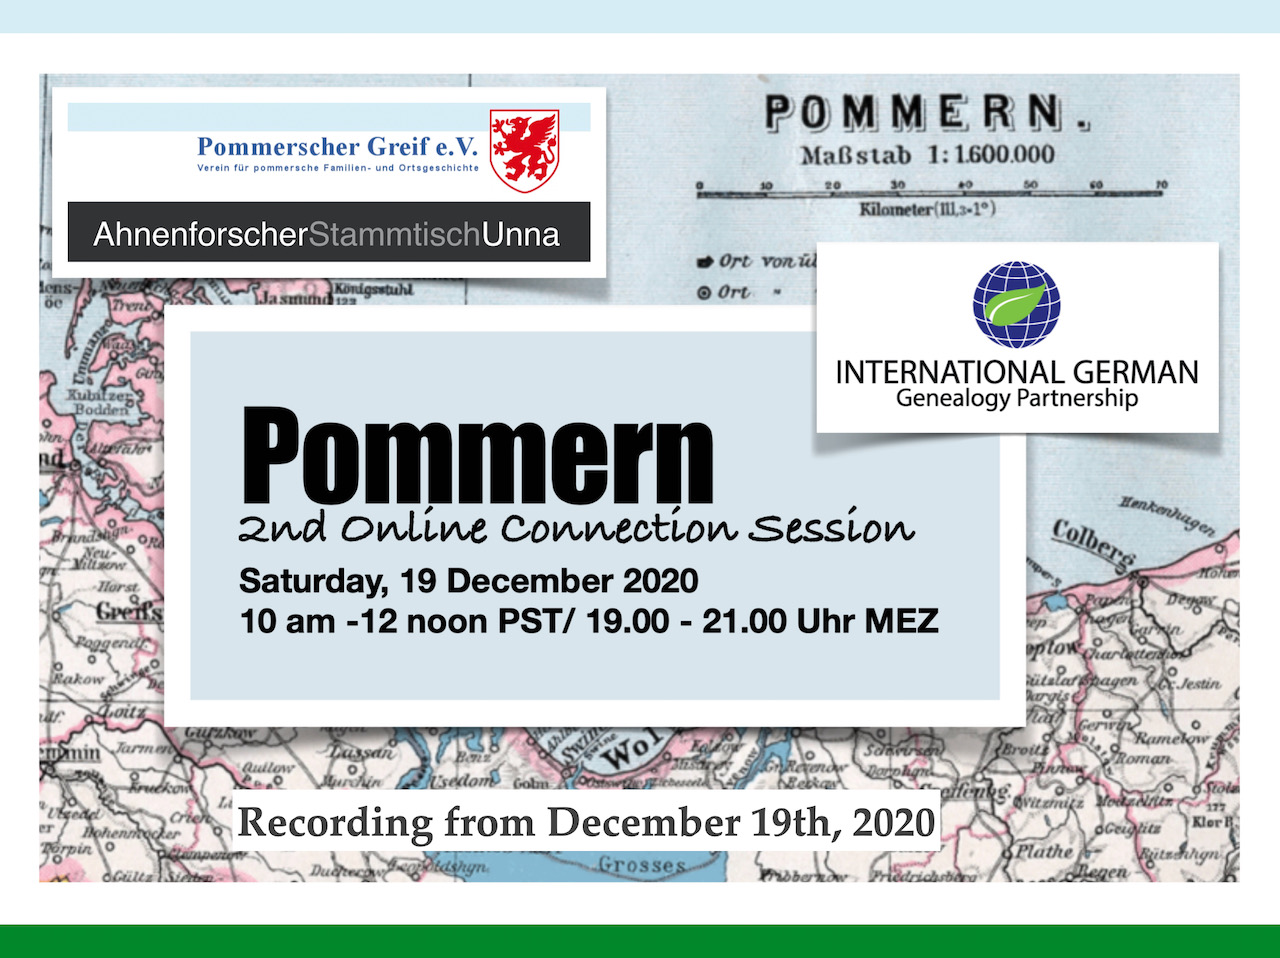 Großer internationaler Teilnehmerkreis bei der 2nd ONLINE POMMERN CONNECTION SESSION